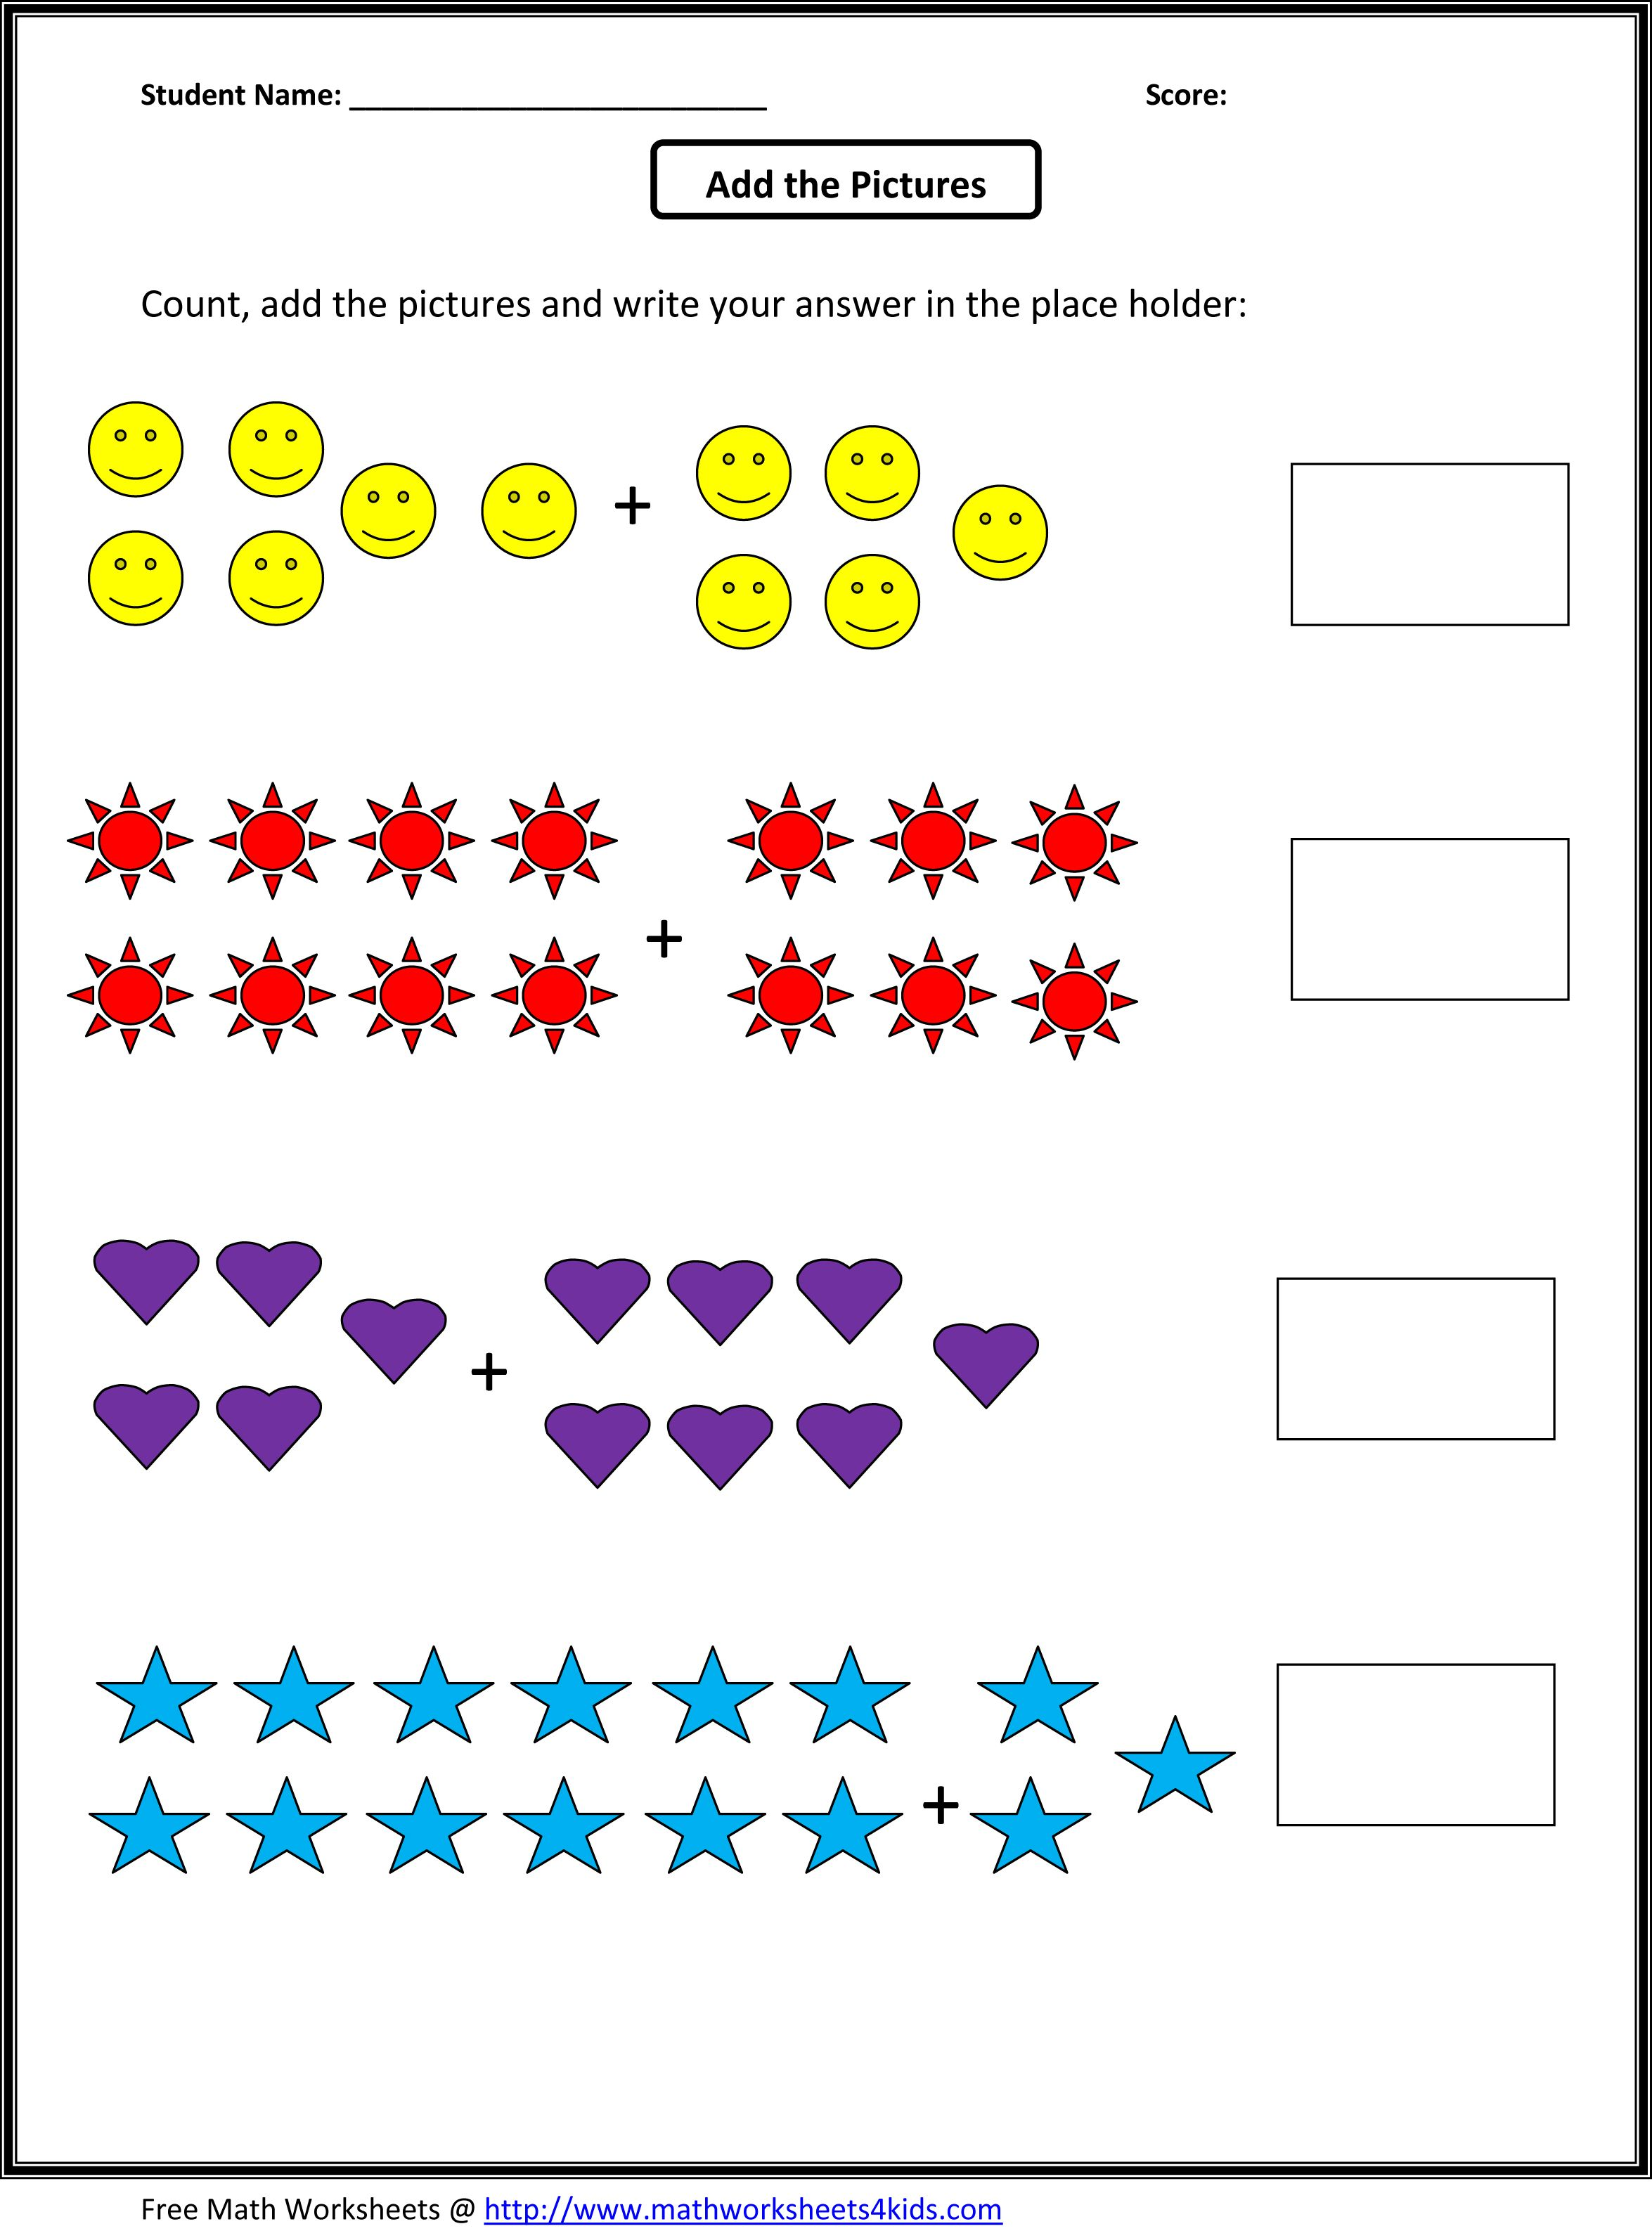 Worksheet Free Math Worksheets For 1st Graders 1000 images about projects to try on pinterest vocabulary worksheets academic and math worksheets